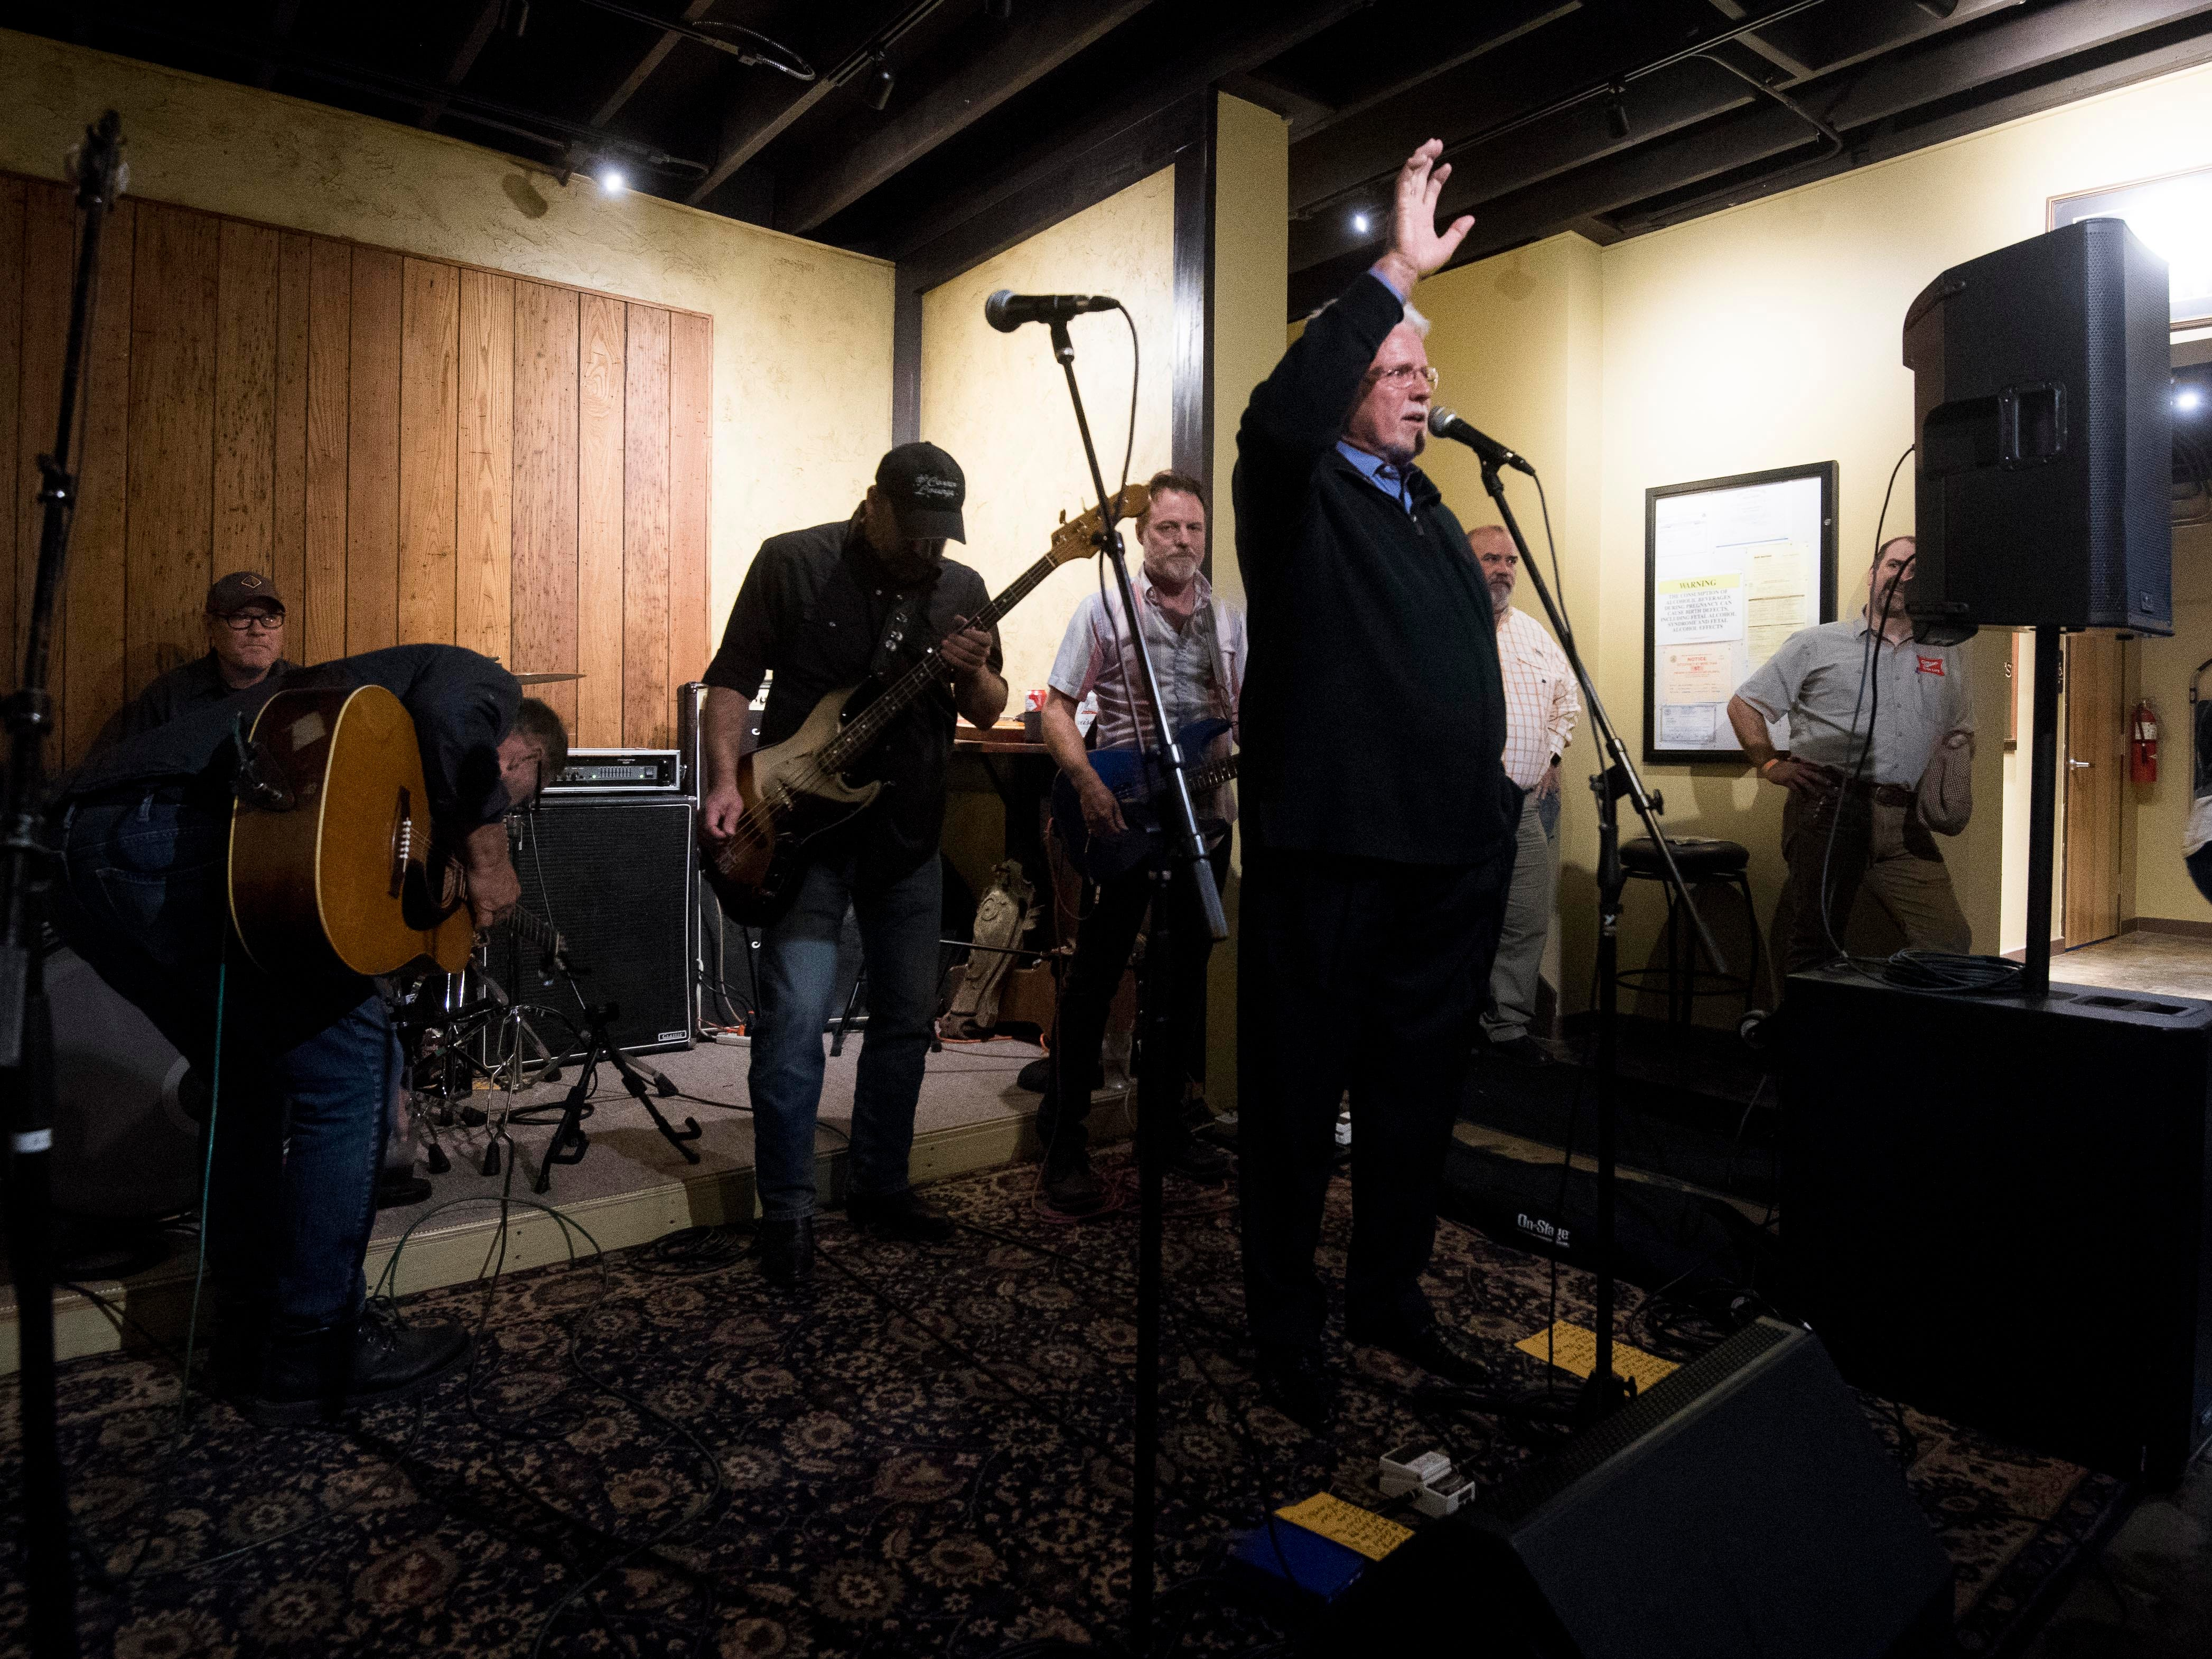 Con Hunley greets the crowd as he takes the stage again at The Corner Lounge on Friday, October 19, 2018.